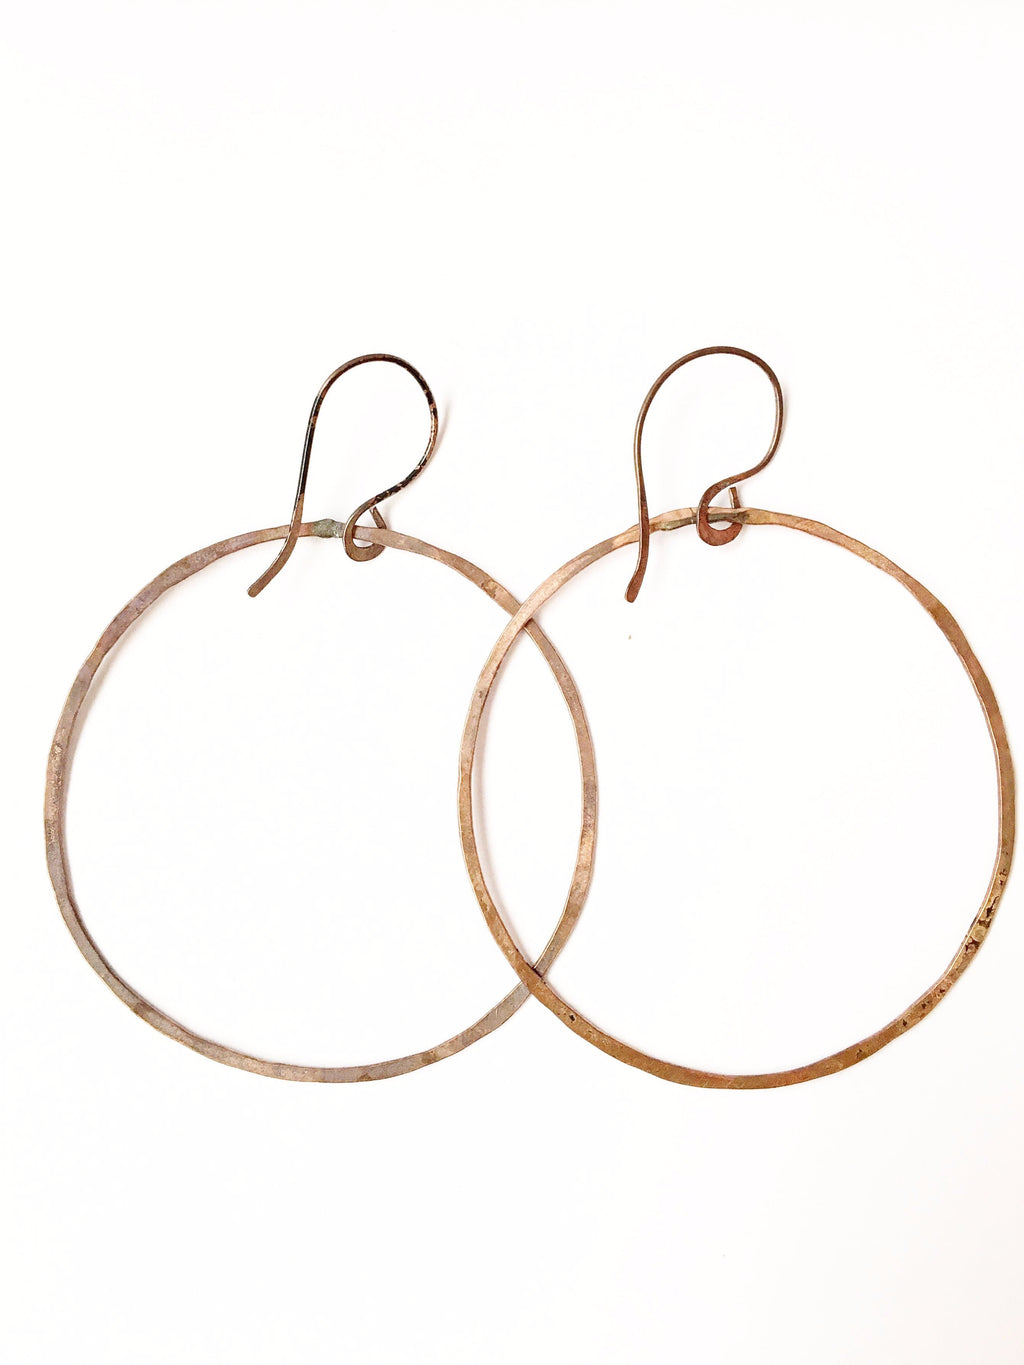 Hammered Copper Hoops - Filosophy